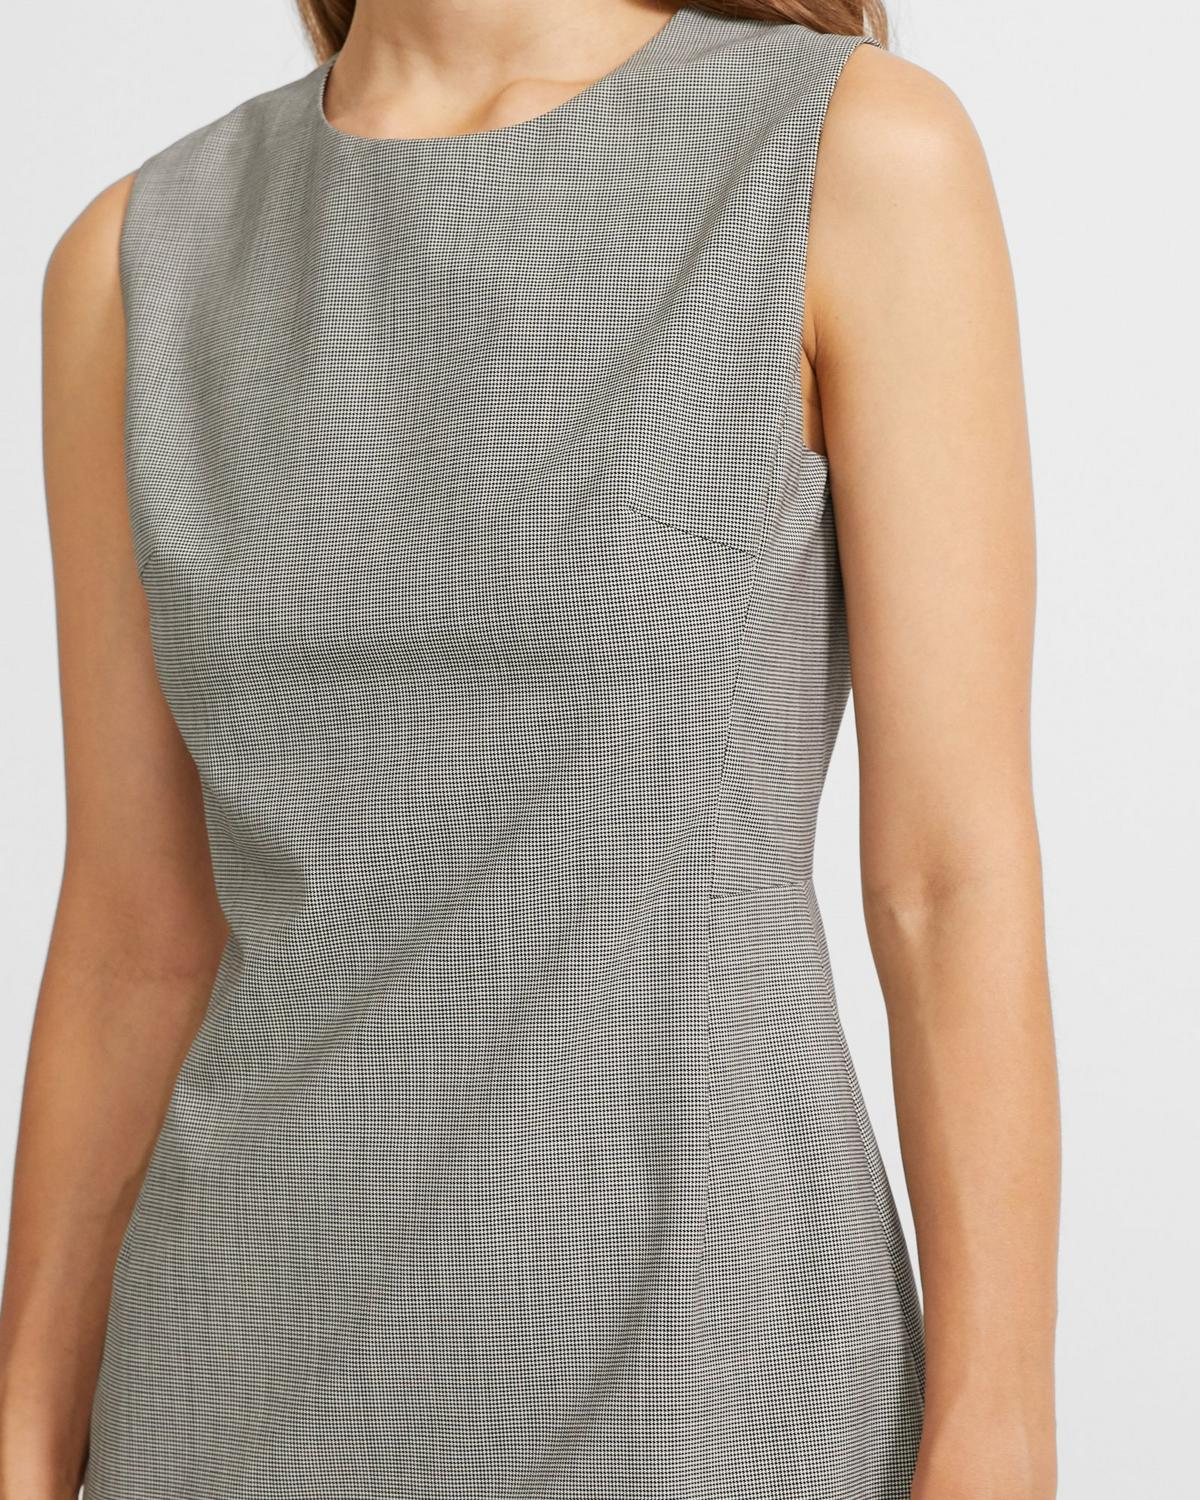 Sleeveless Fitted Dress in Houndstooth Good Wool